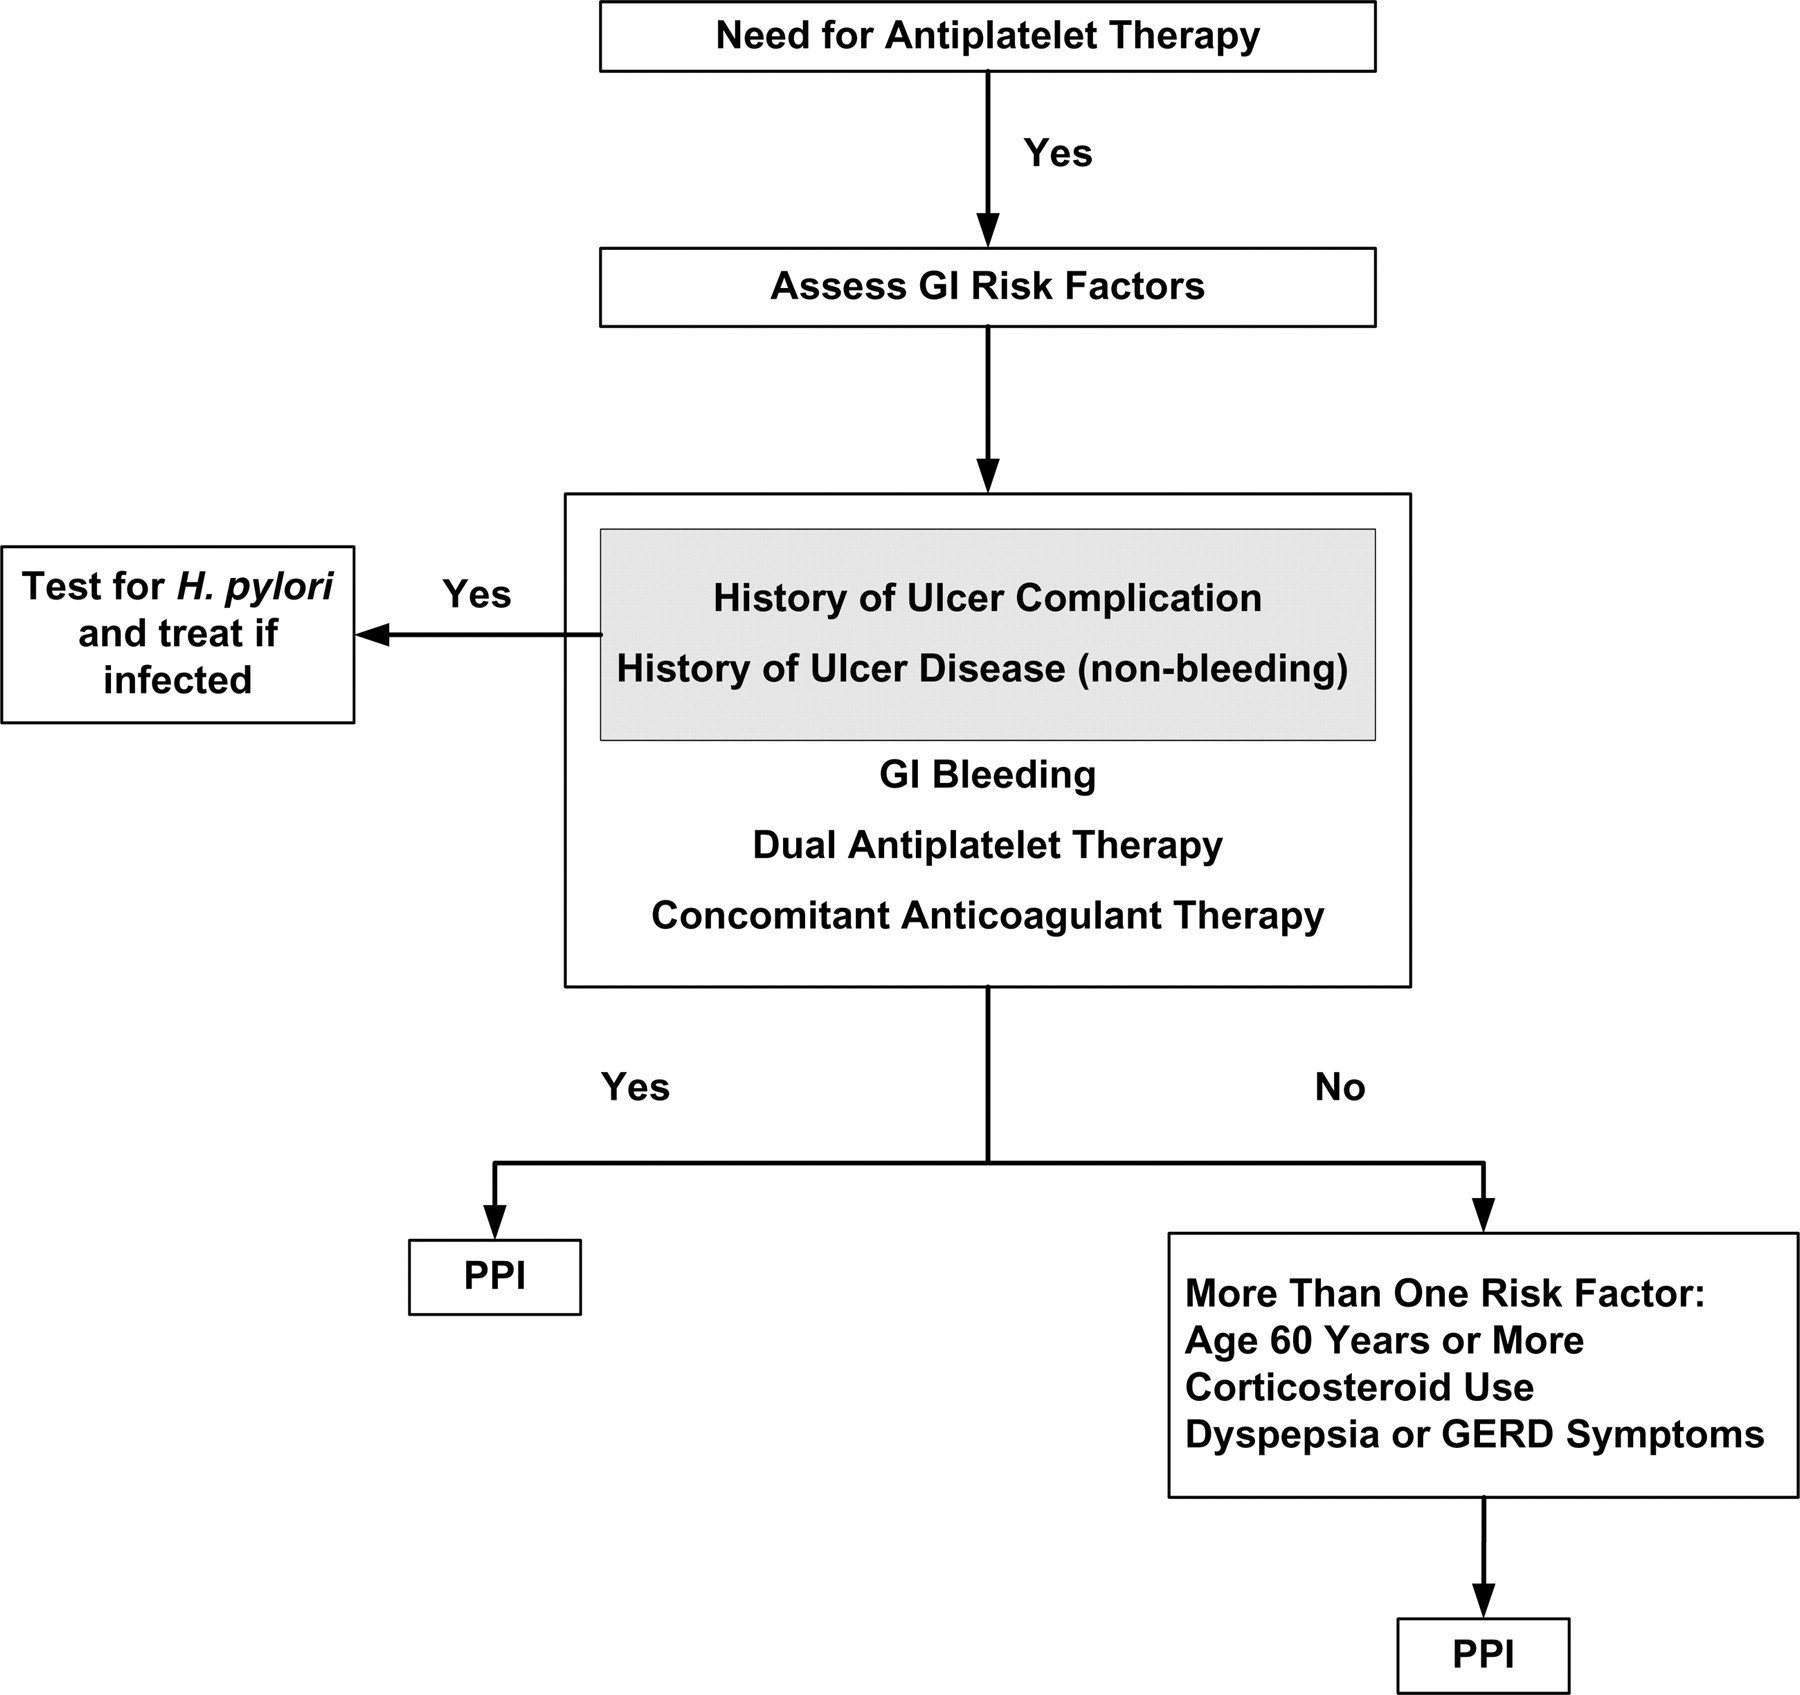 ACCF/ACG/AHA 2008 Expert Consensus Document on Reducing the